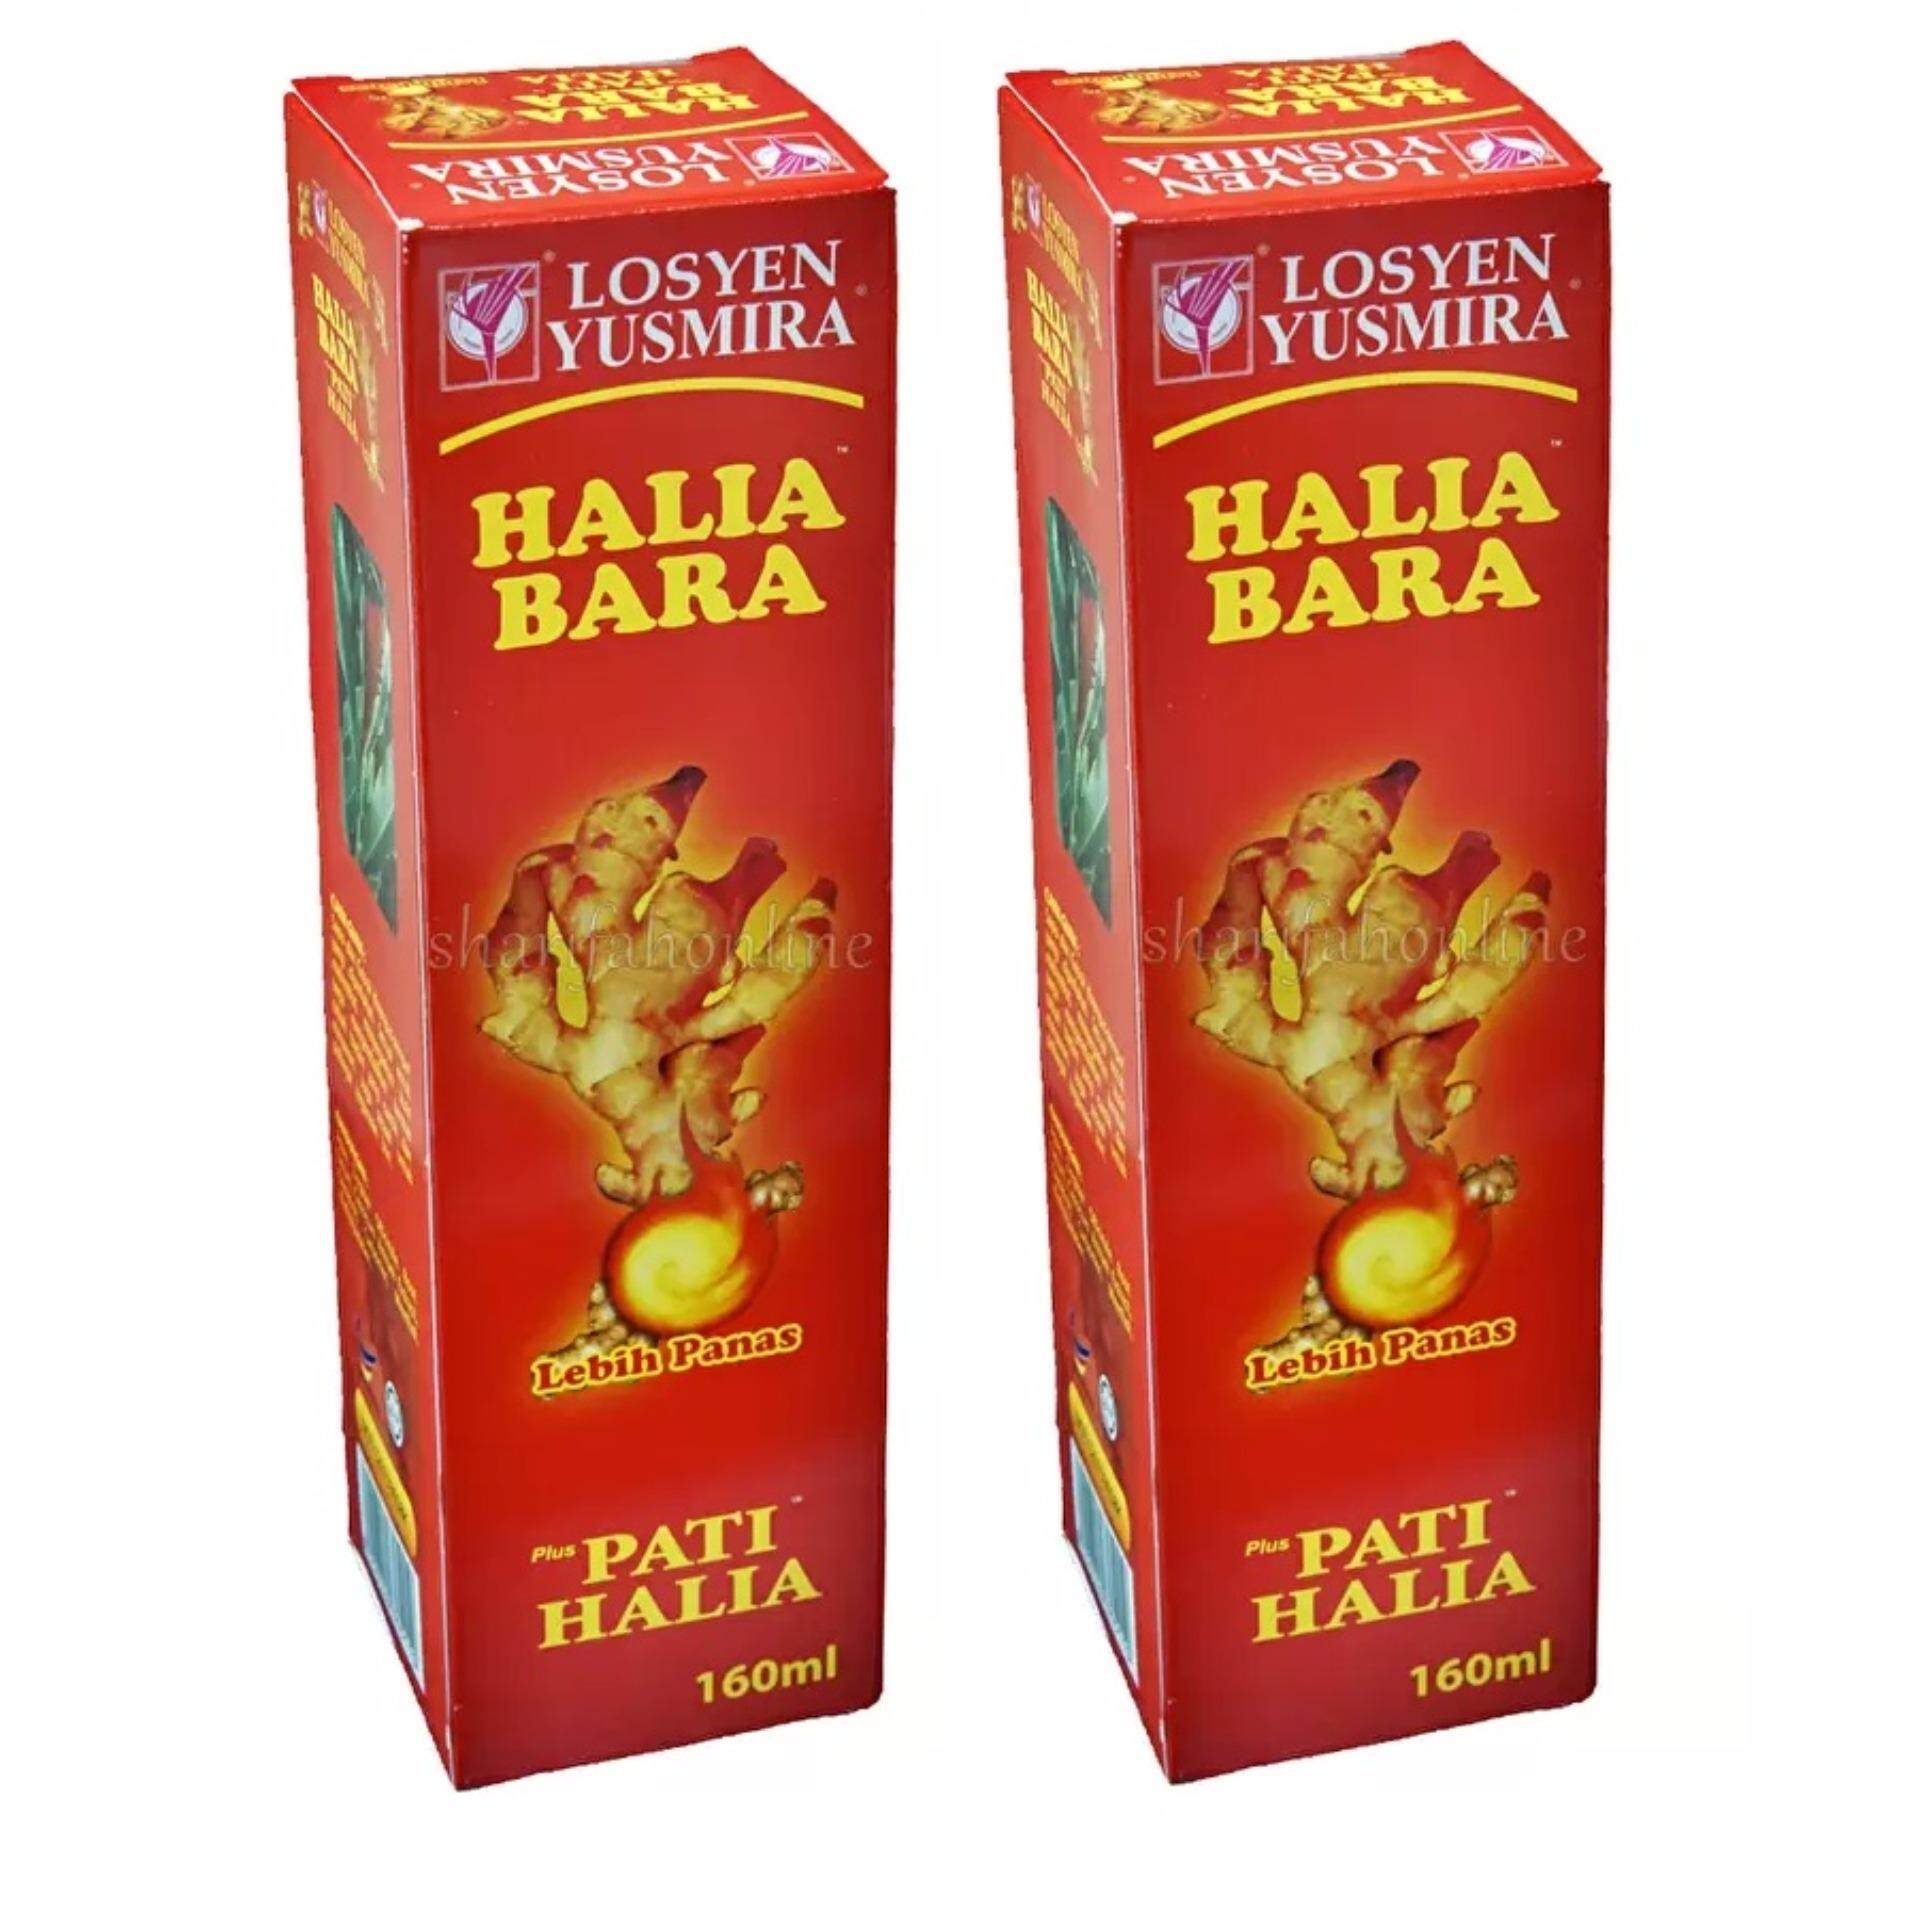 Lotion Yusmira Halia Bara Plus Halia 160ml x 2